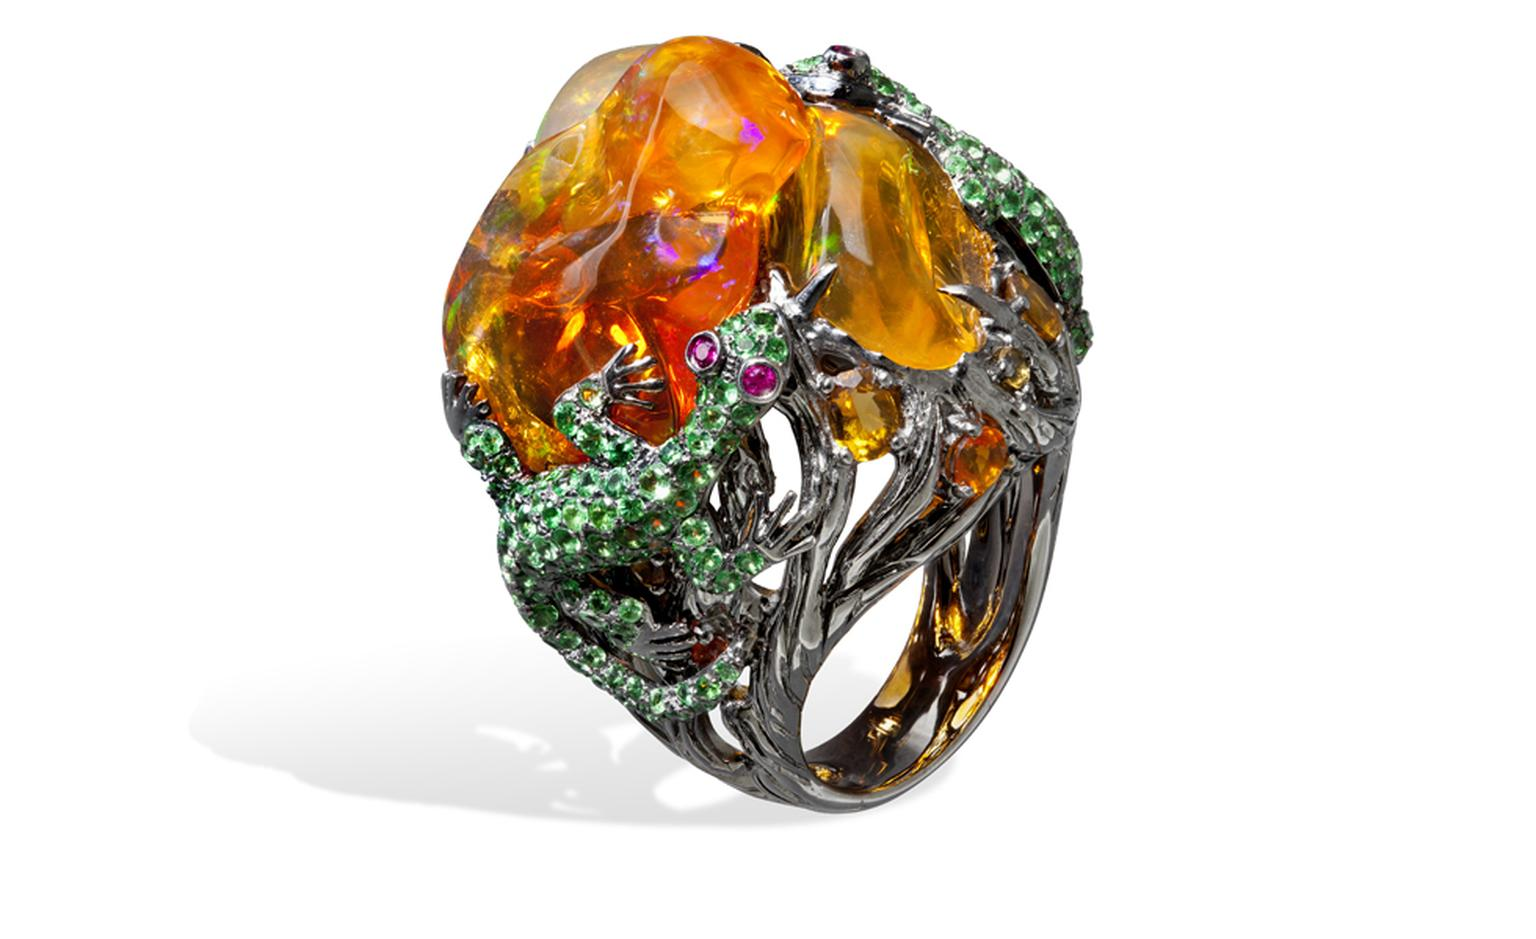 Lydia Courteille. Lizard ring, orange Mexican opals, rubies, green garnets, blackened gold. POA